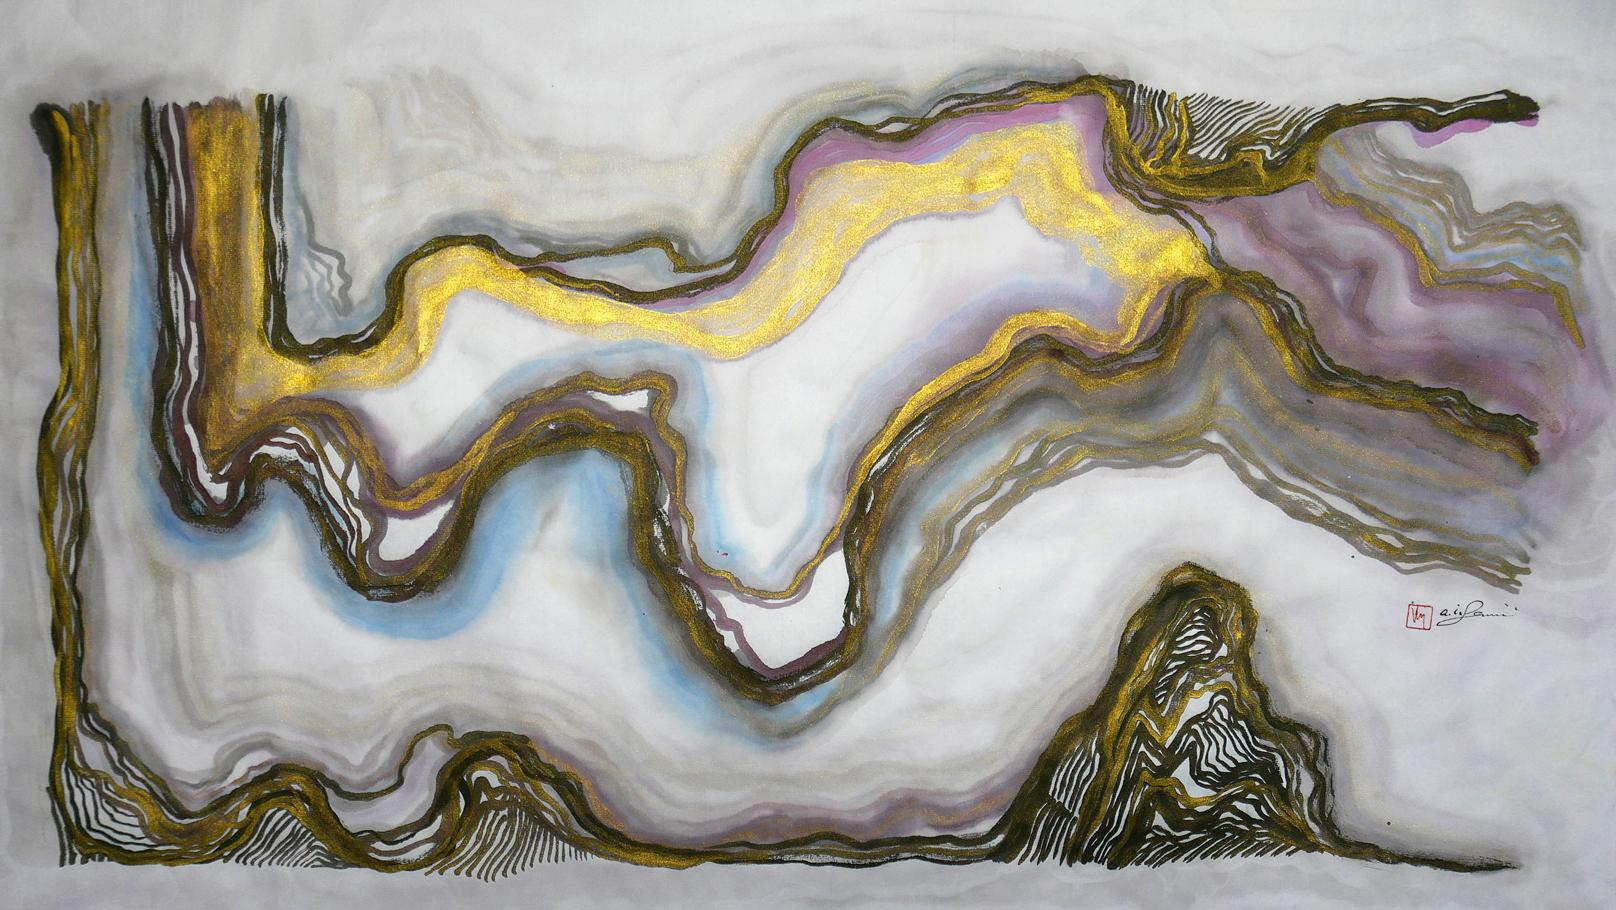 AI makes 'Mindscapes' using traditional Chinese painting techniques